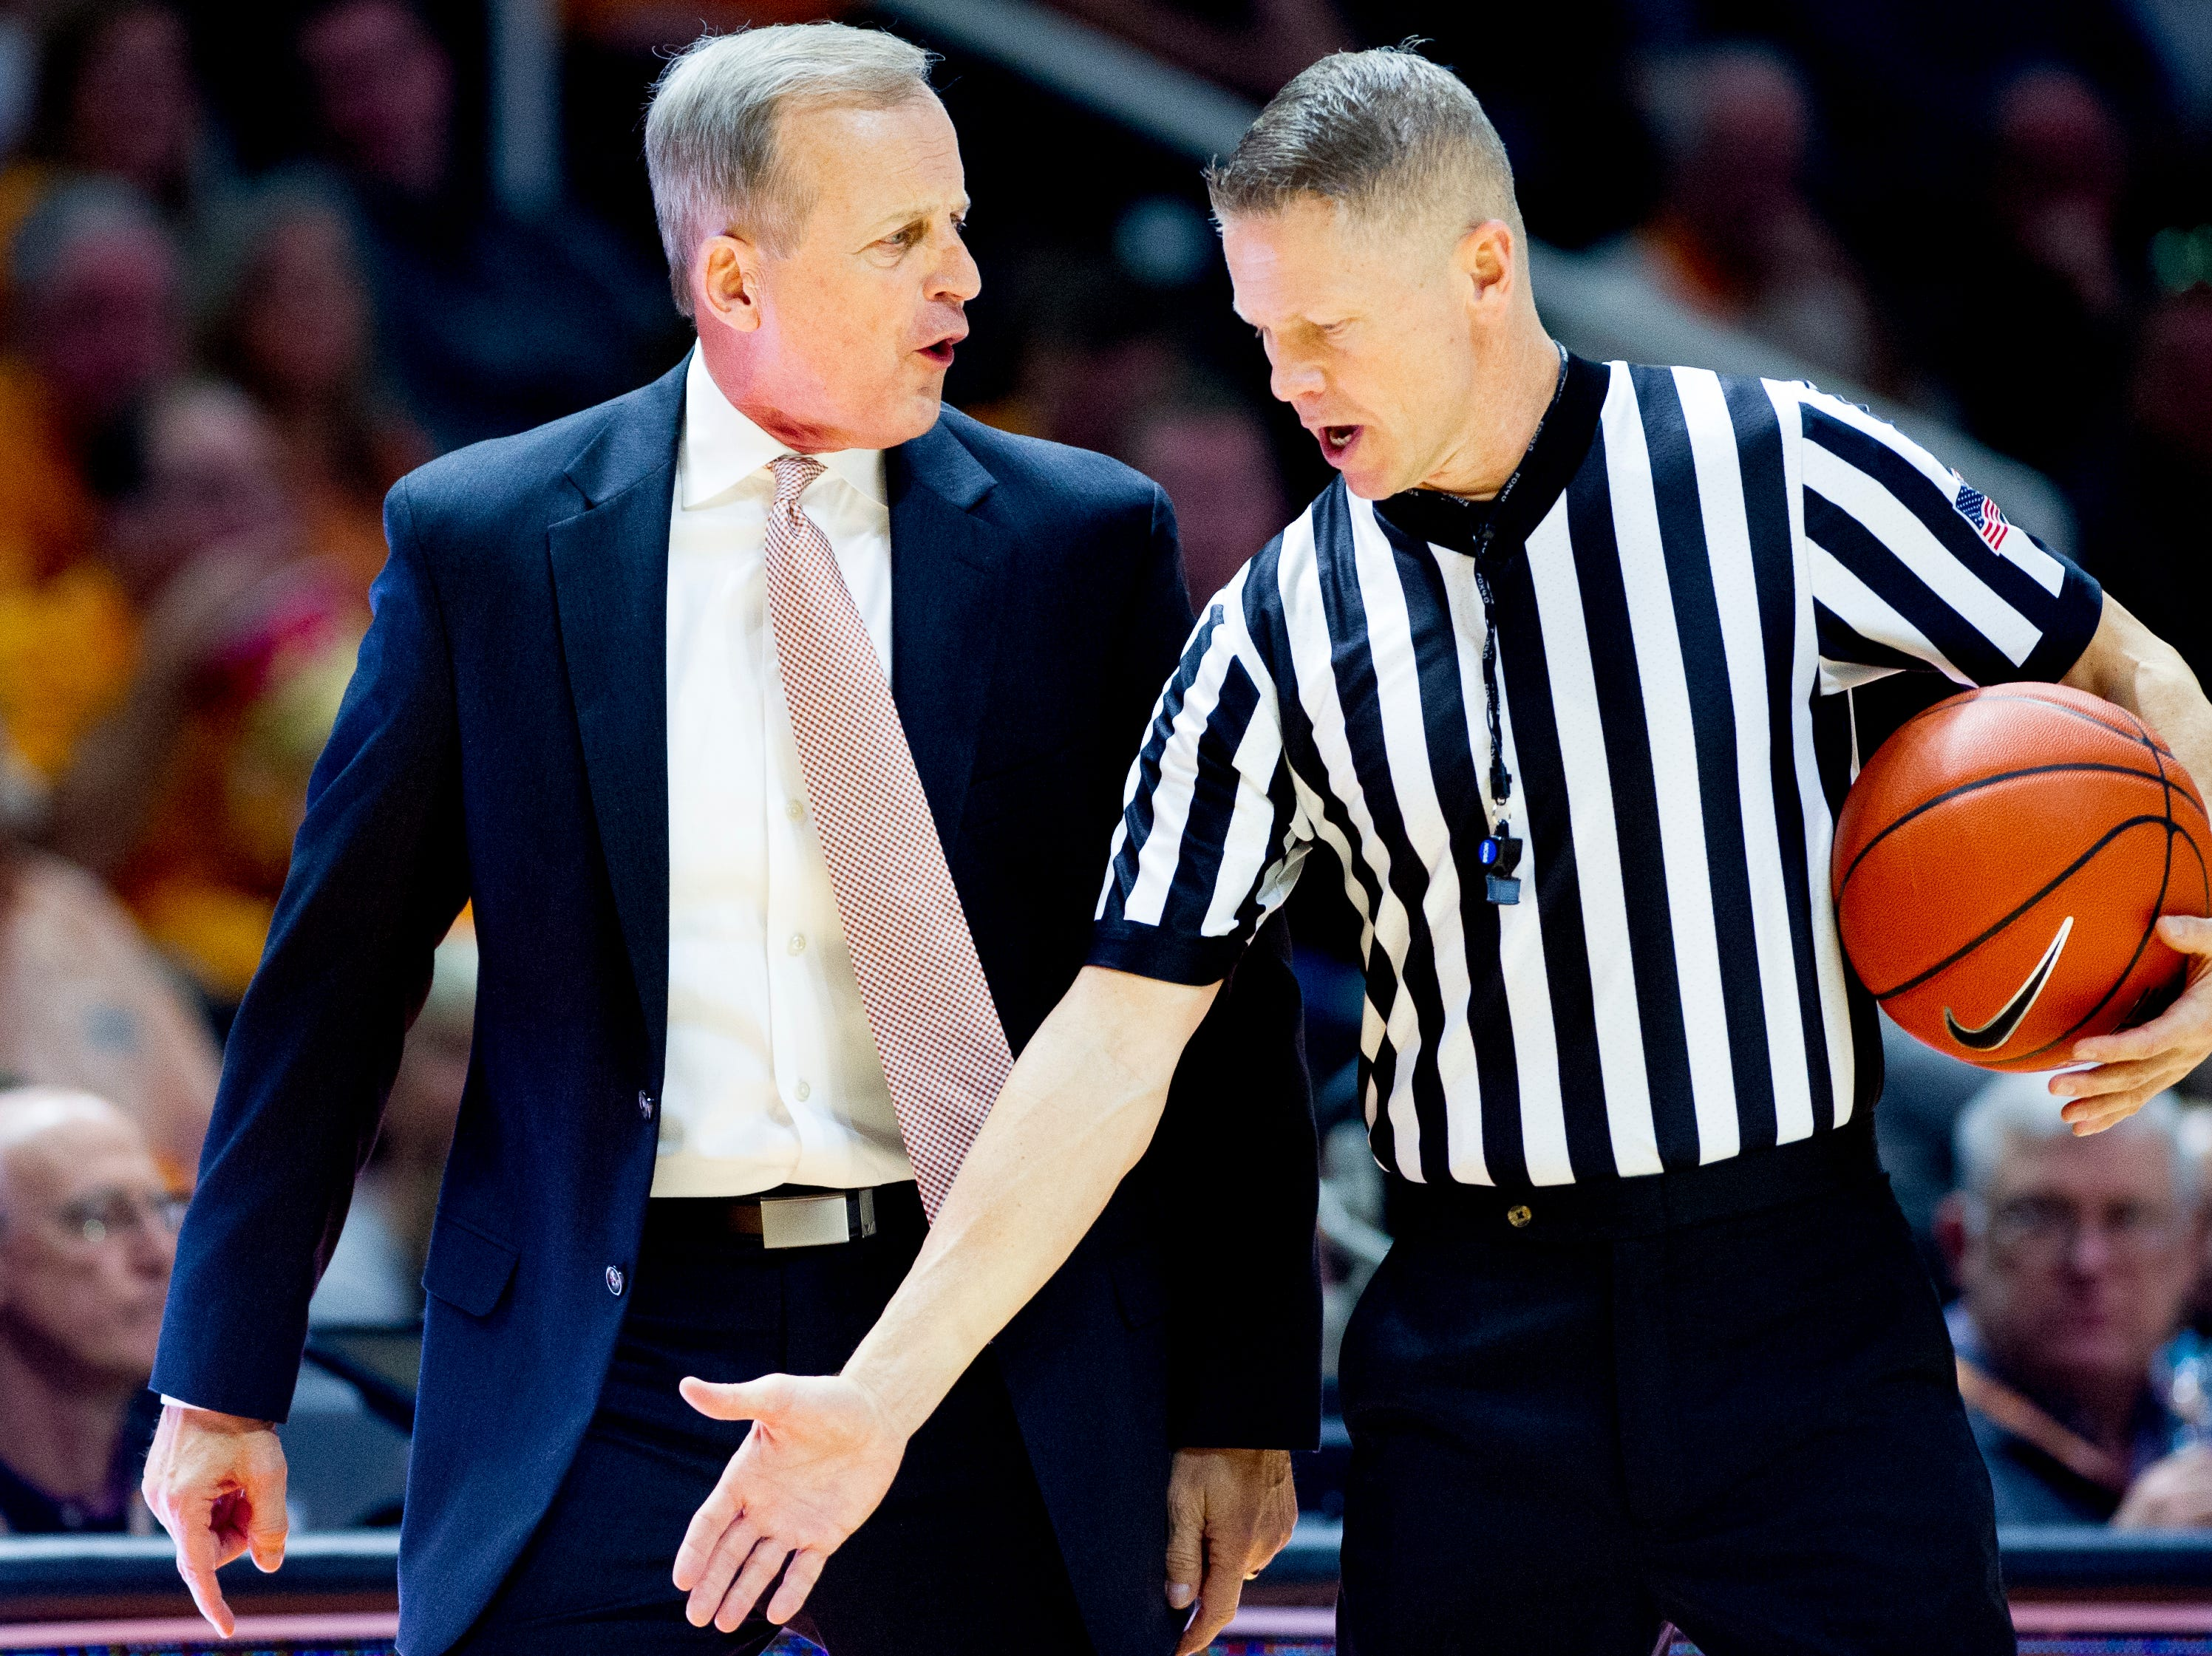 Tennessee Head Coach Rick Barnes argues a call with the referee during a game between Tennessee and Wake Forest at Thompson-Boling Arena in Knoxville, Tennessee on Saturday, December 22, 2018.